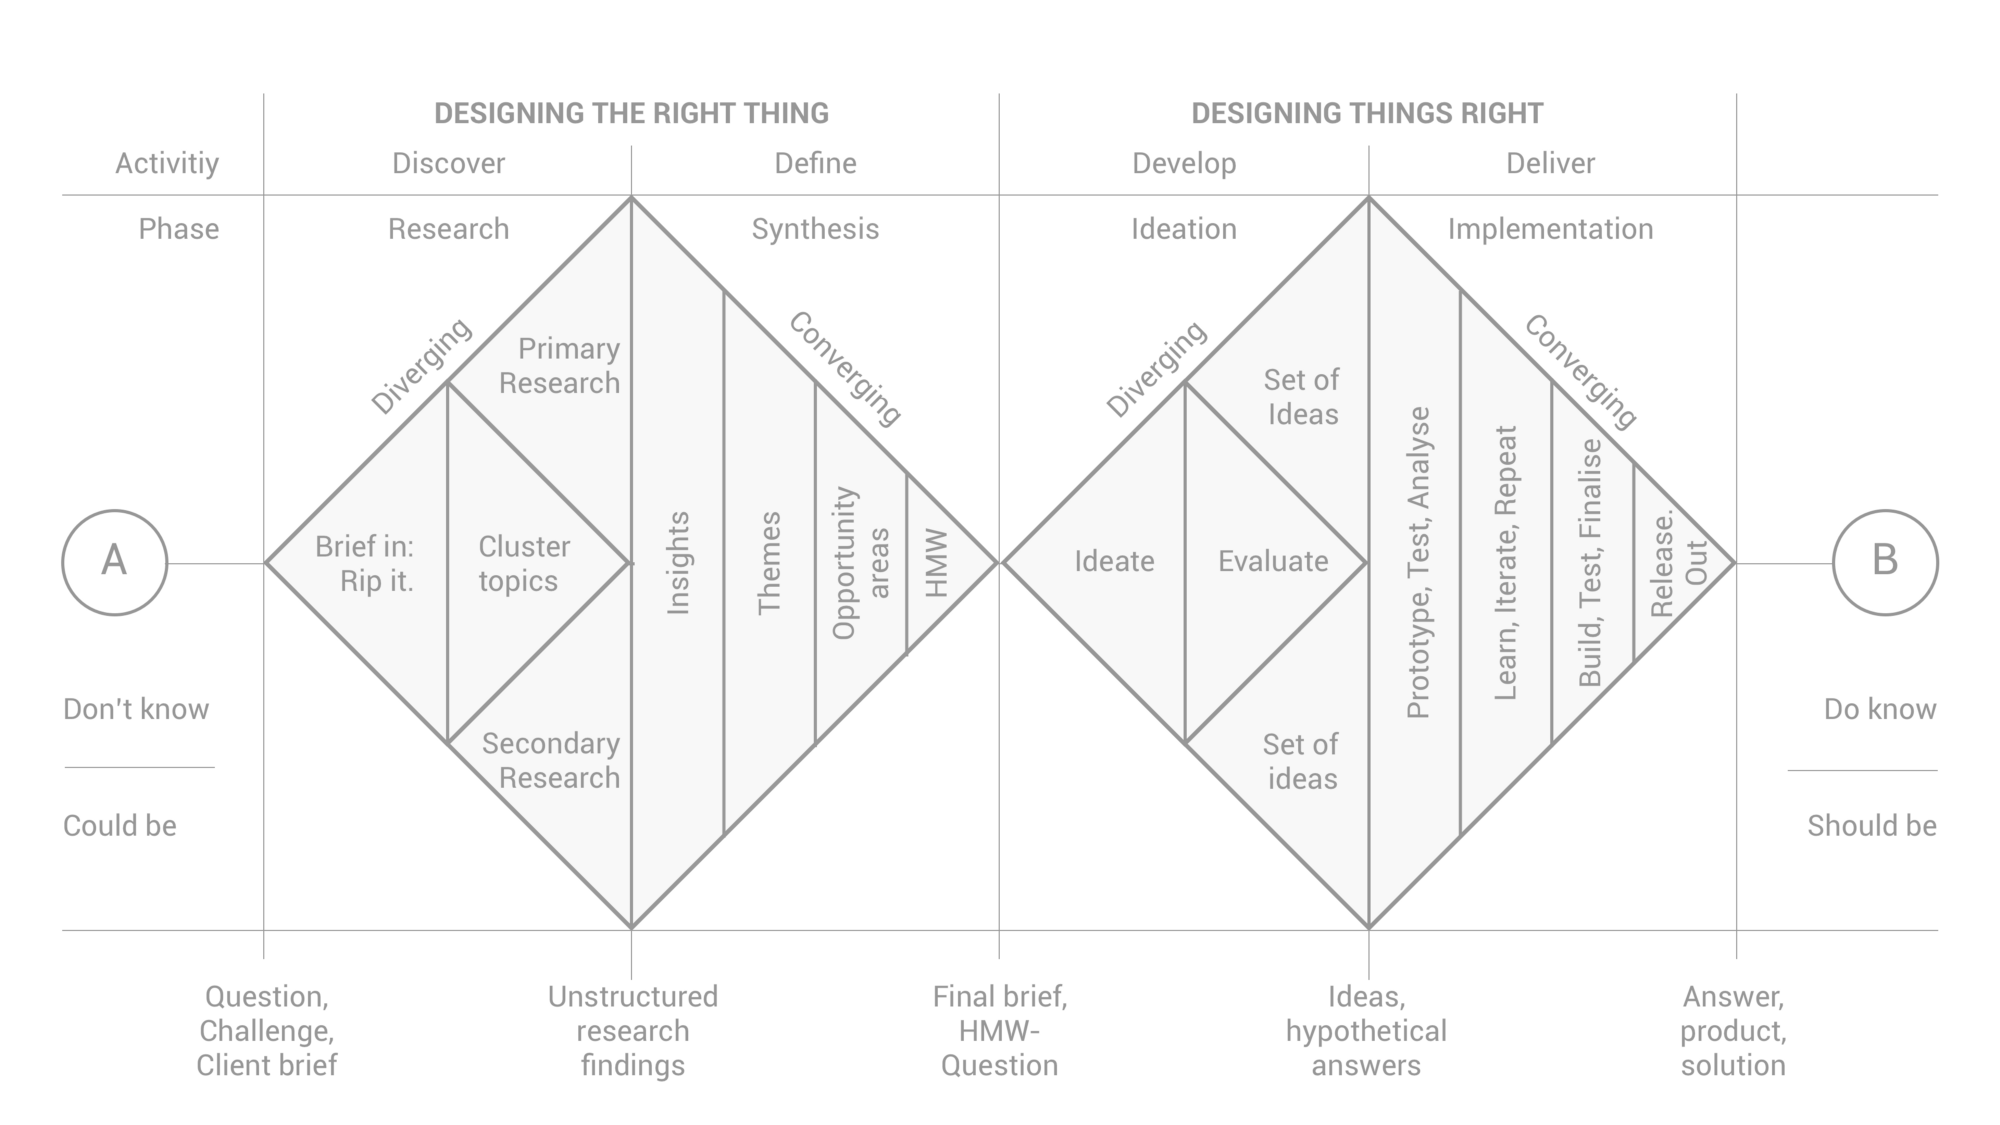 How to rethink the Design process, fail, reflect and iterate